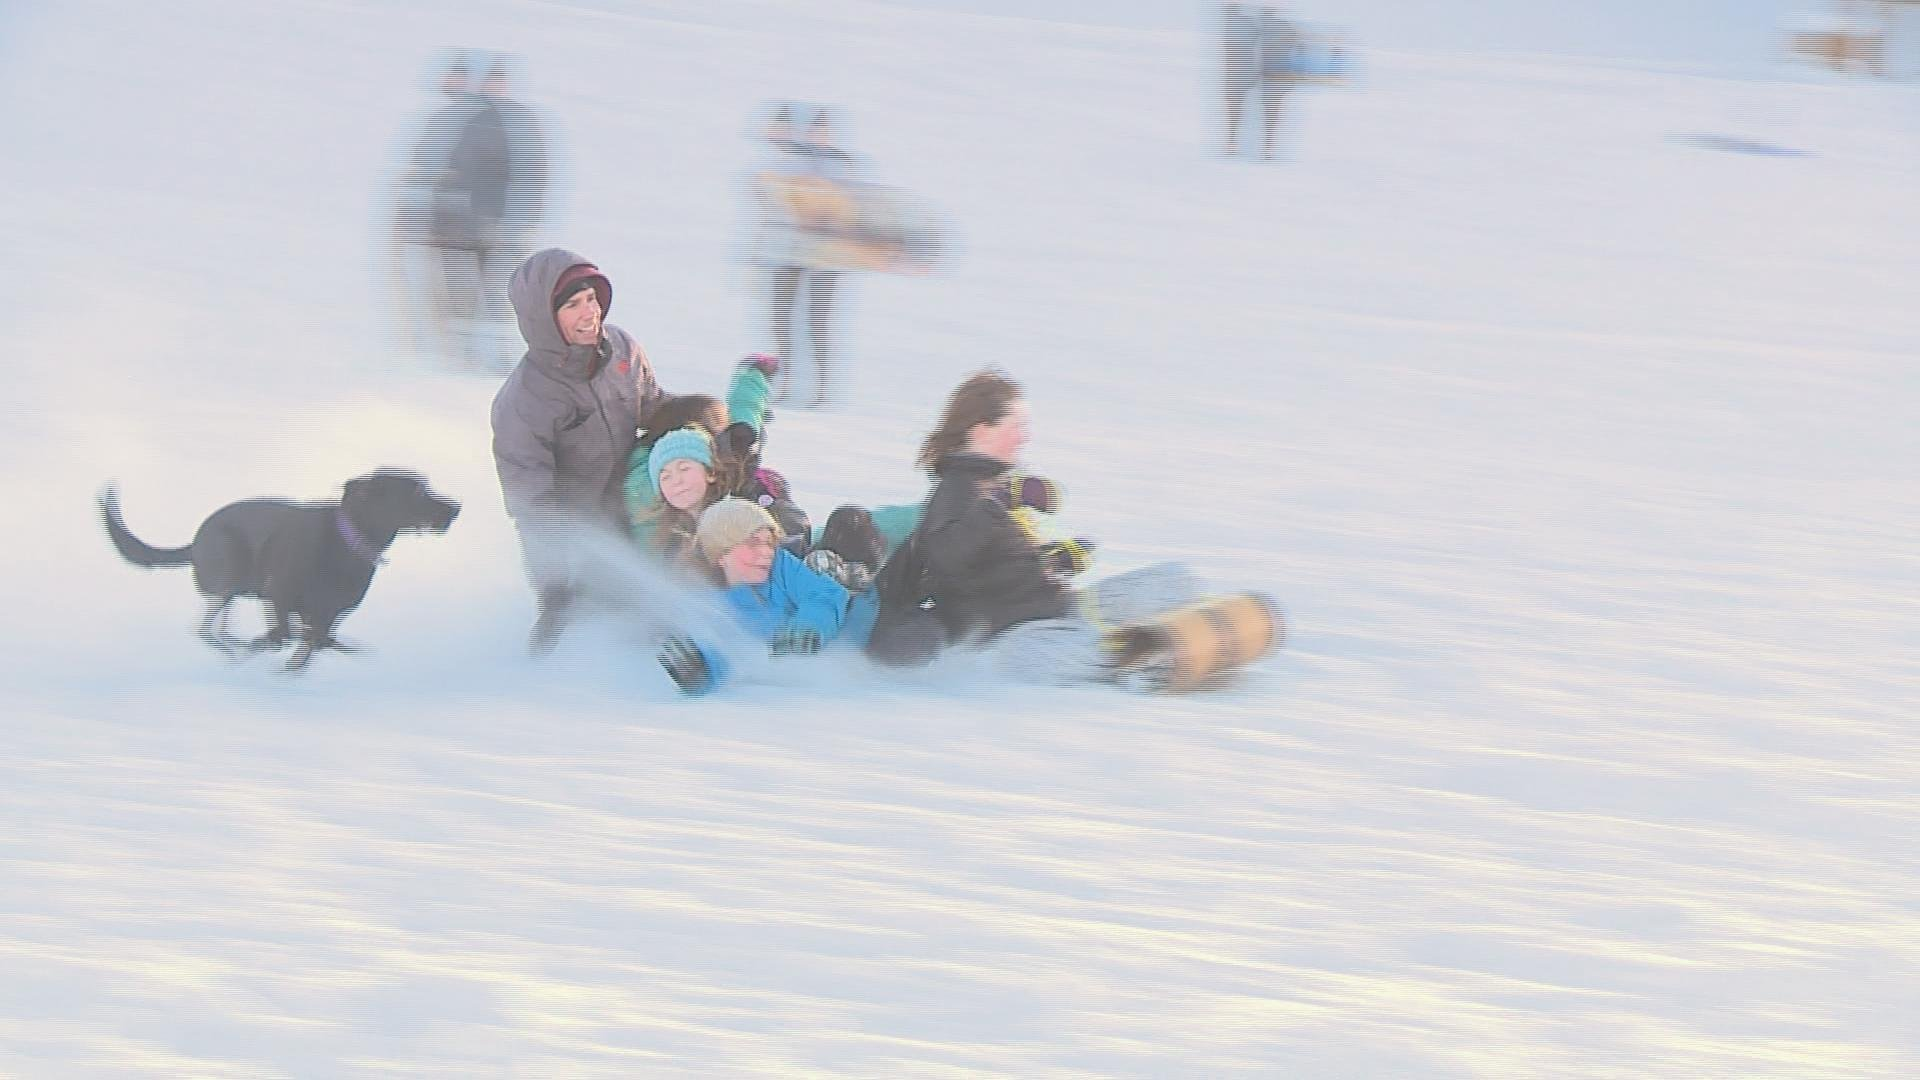 Jason Speich, his daughter Ivy, and her friends ride their sleigh down the hill at Elver Park during Snow Glow Friday.